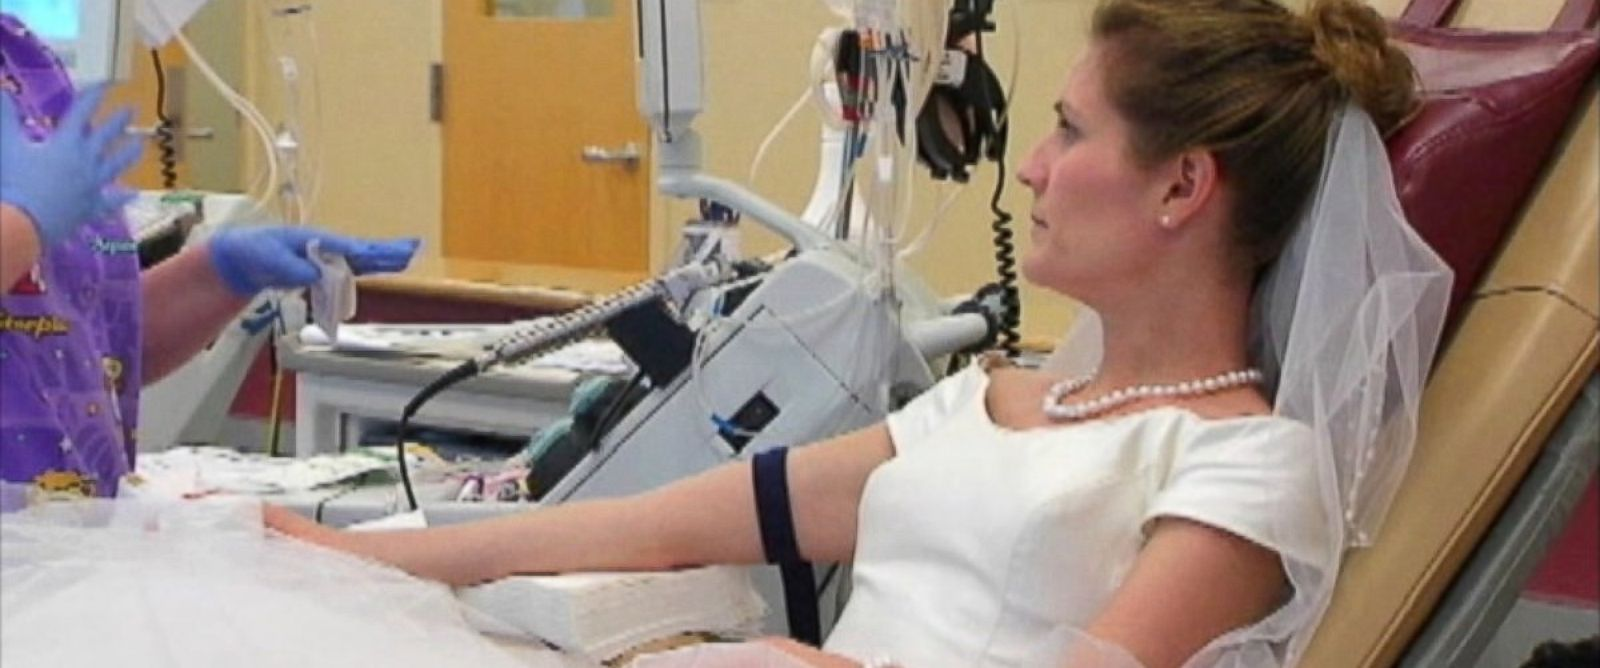 PHOTO: Monica Behney donates blood on her wedding day at the Virginia Blood Services Donor Center in Richmond, Virginia on June 1, 2014.